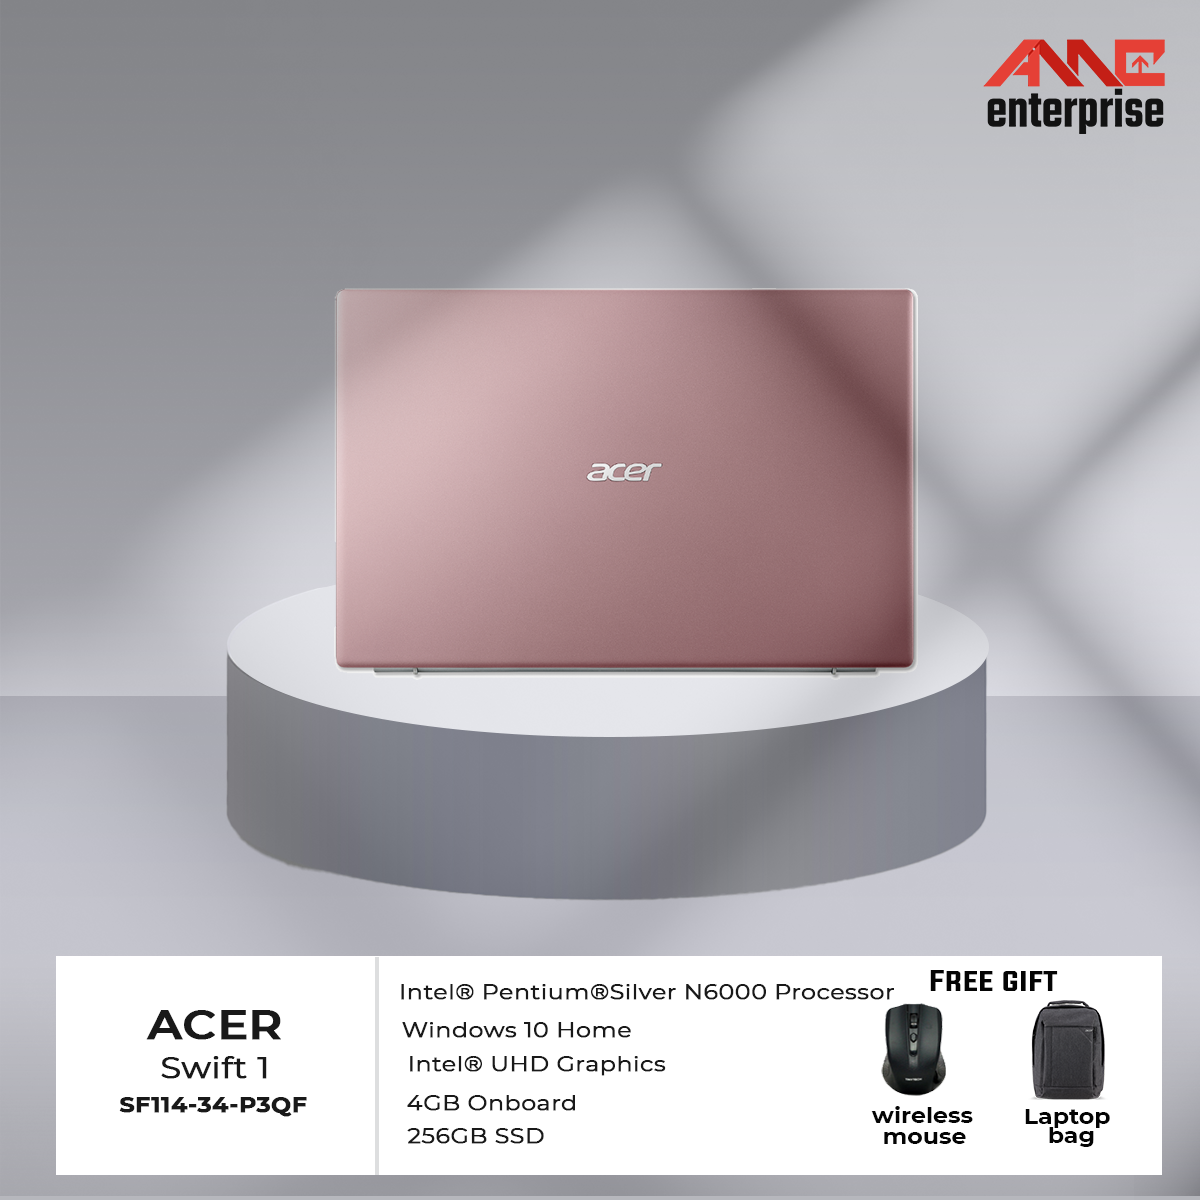 Acer Laptop Swift 1 SF114-34-P3QF (3).png